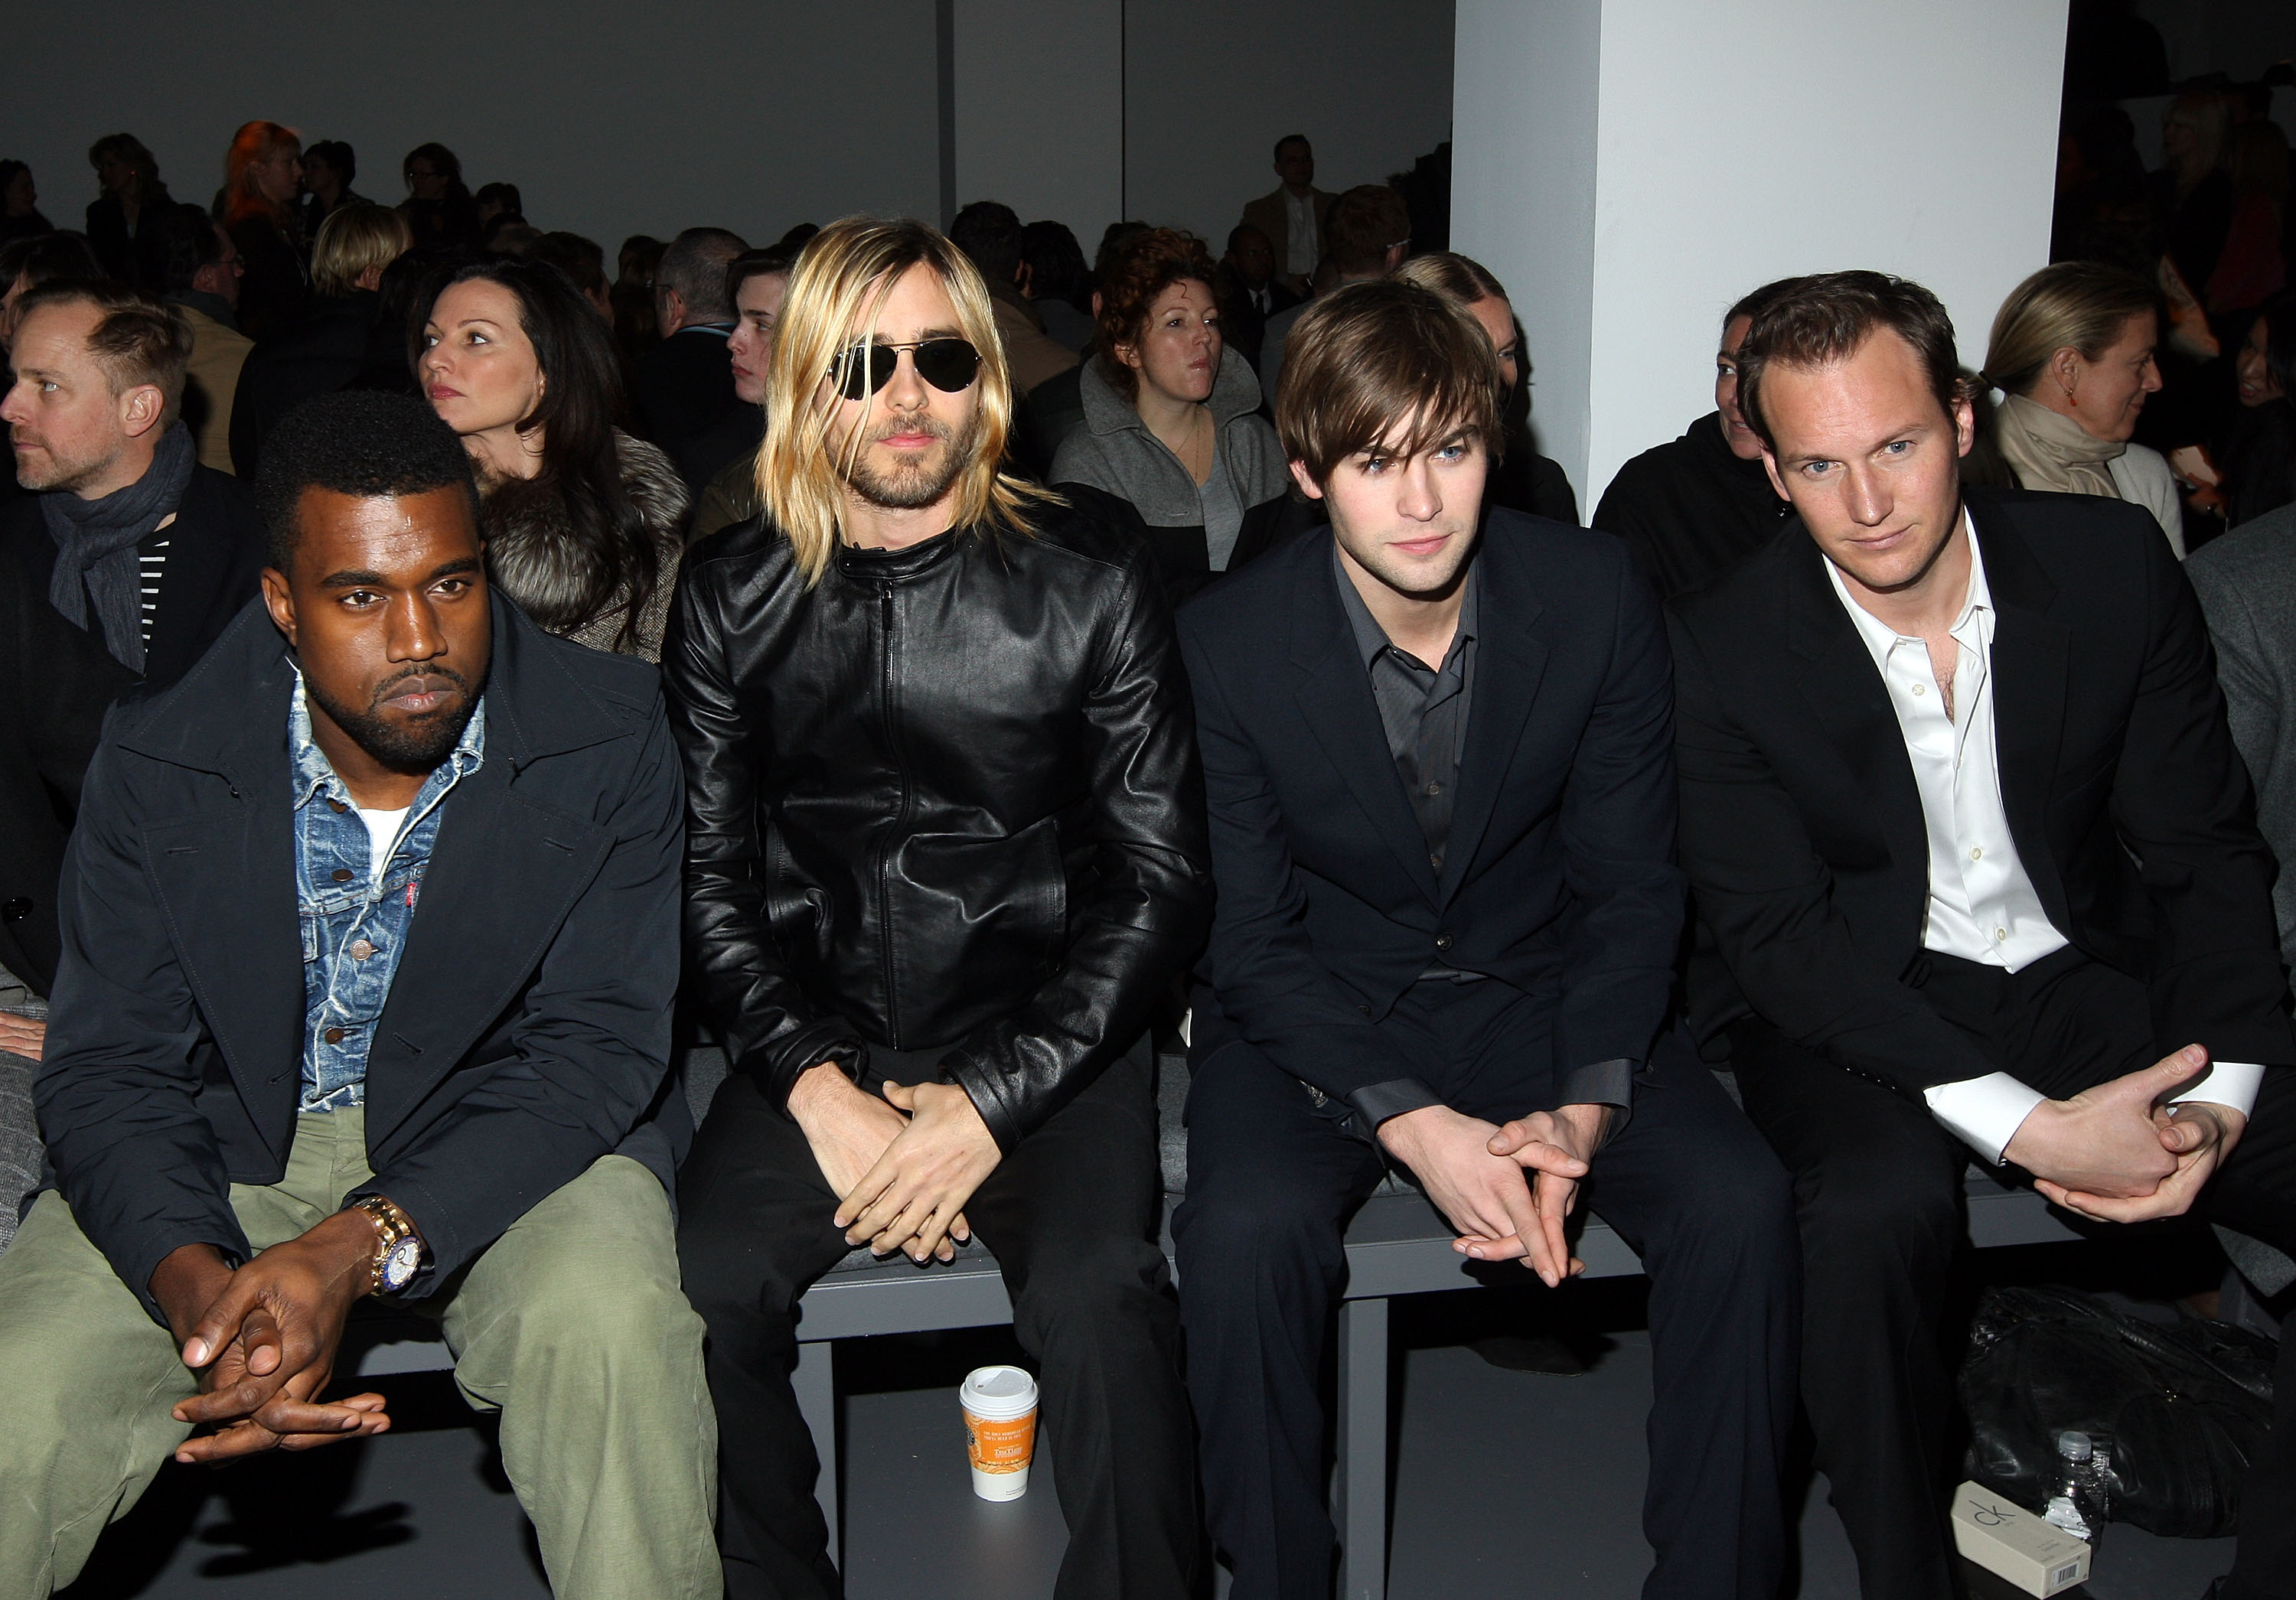 Kanye West, Jared Leto, Chace Crawford and Patrick Wilson at the Calvin Klein Menswear Fall/Winter 2009 fashion show.